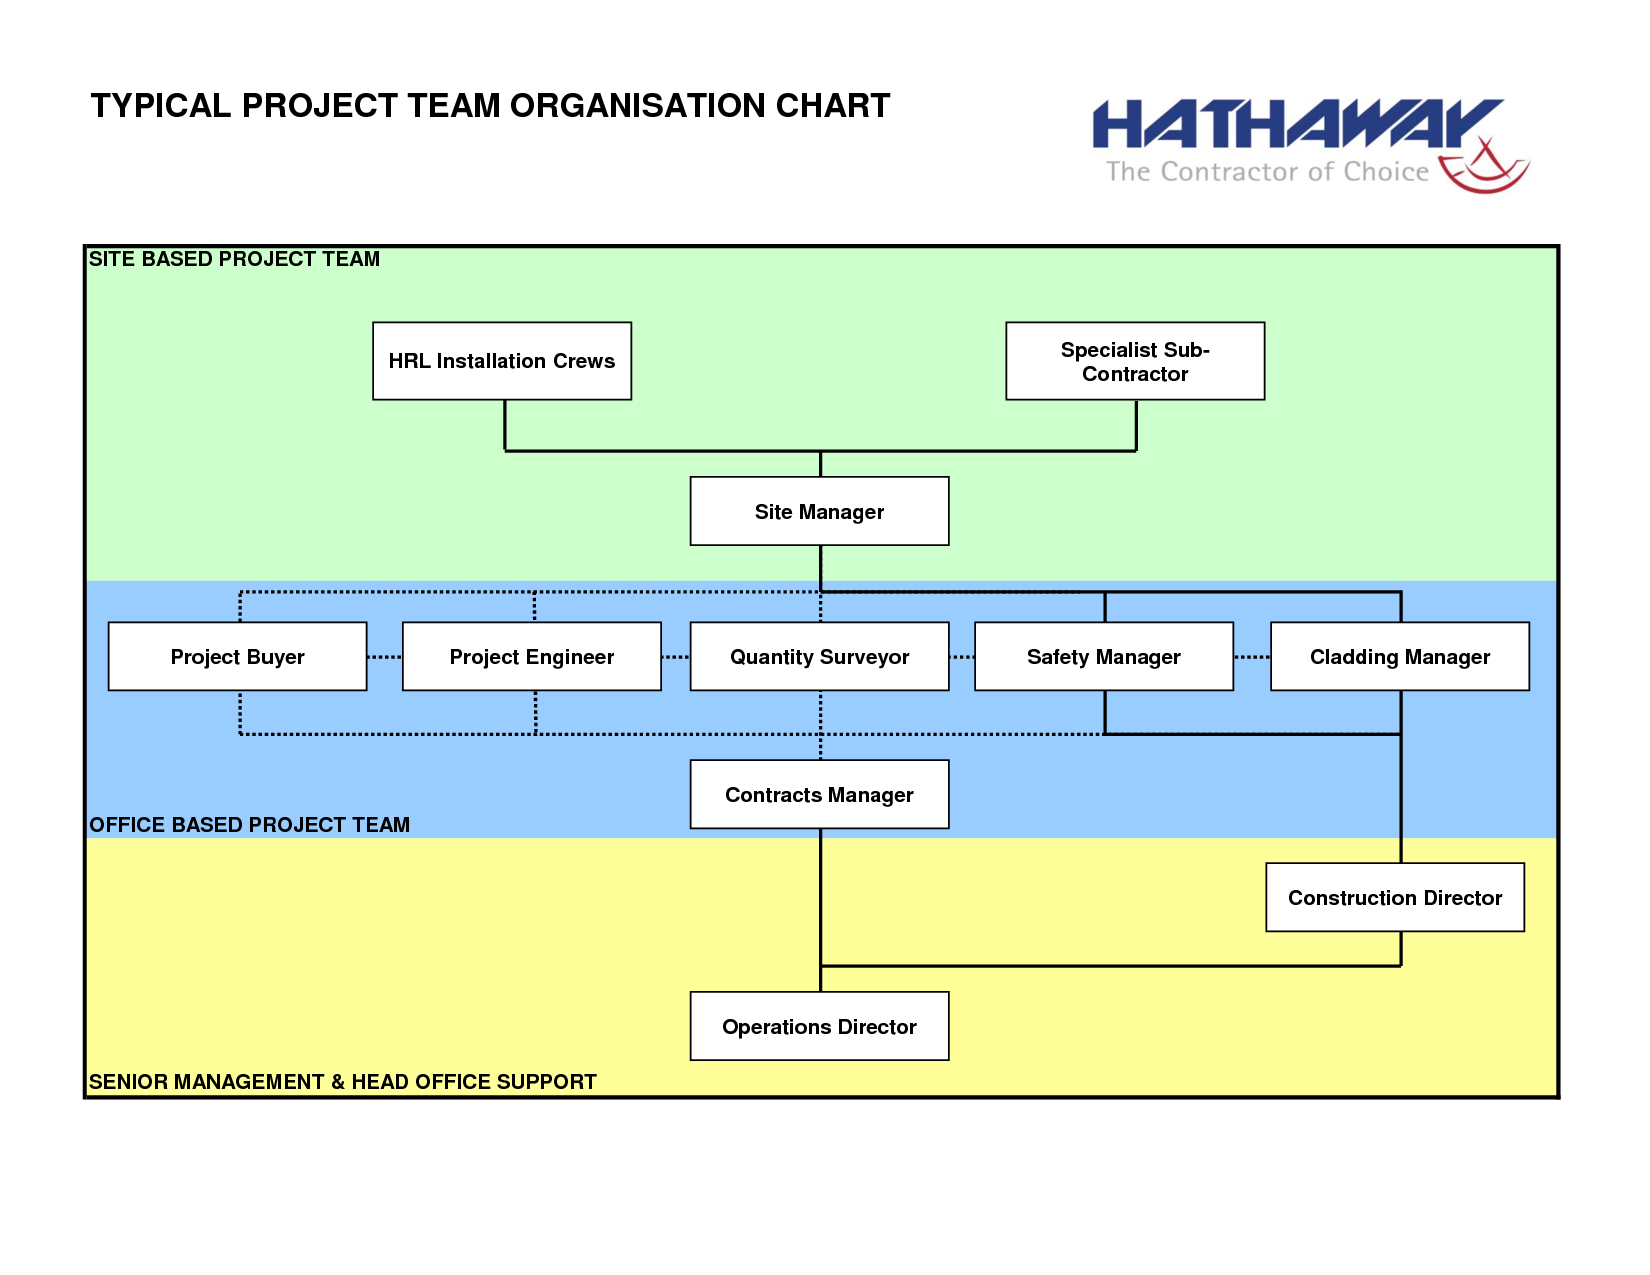 construction organizational chart template | Construction Project ...